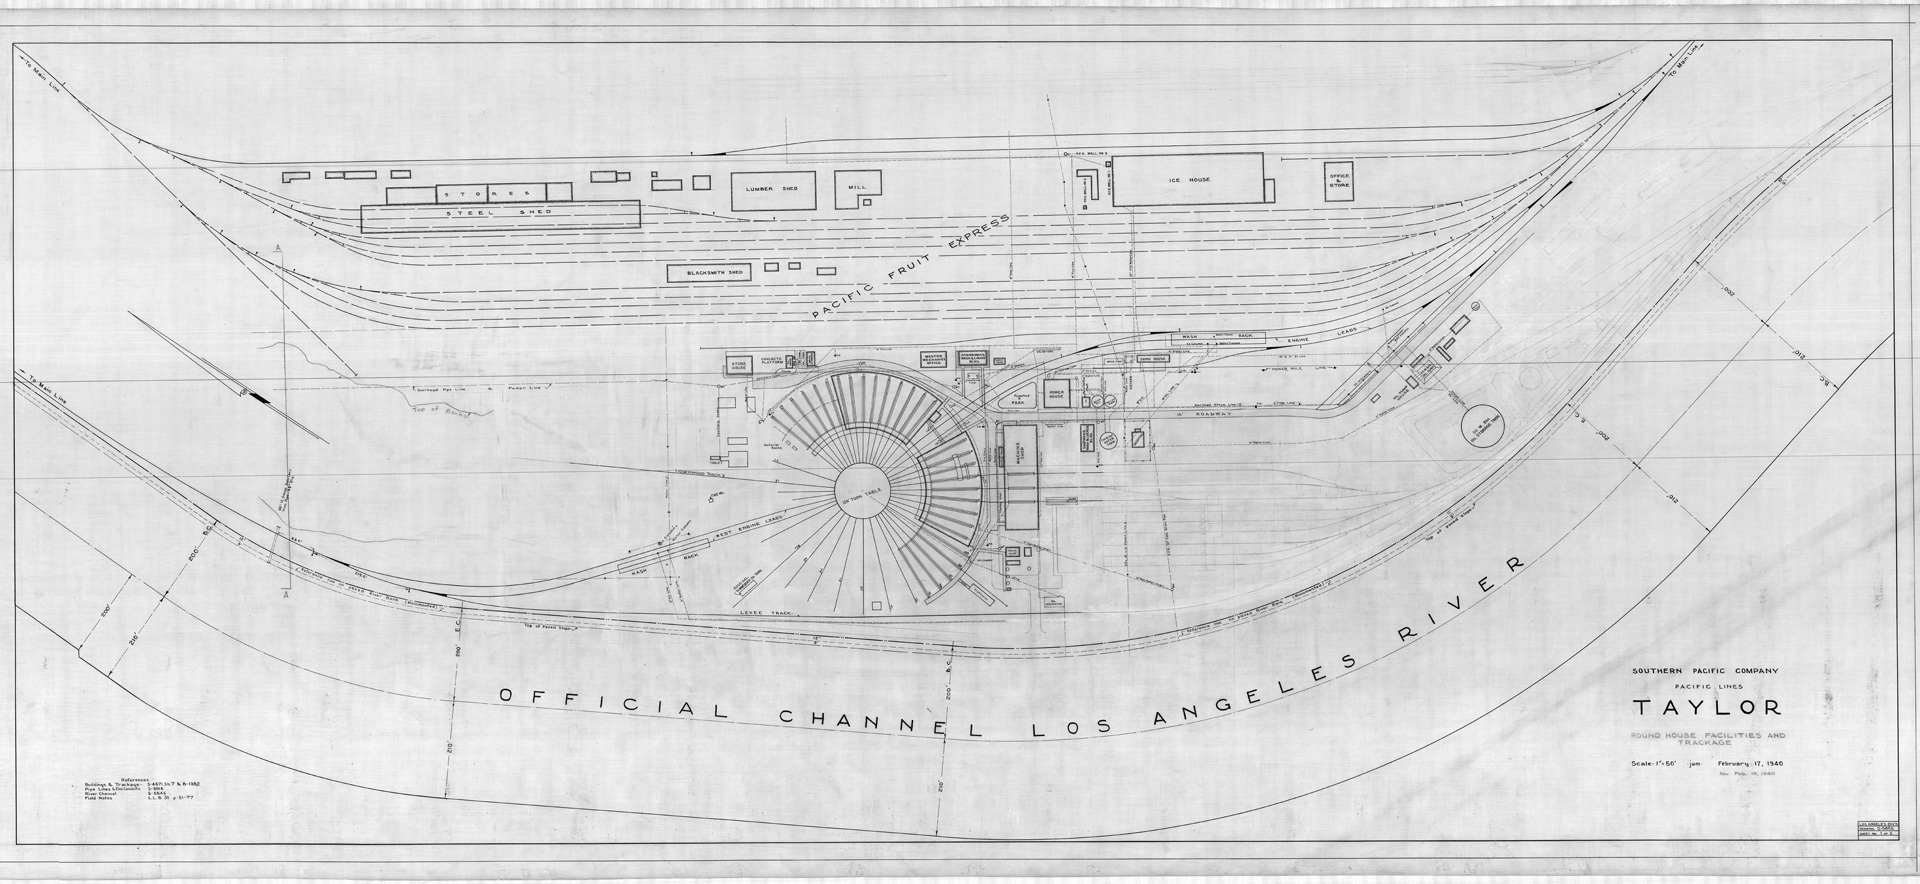 6. Plan of Taylor Yard, 1920